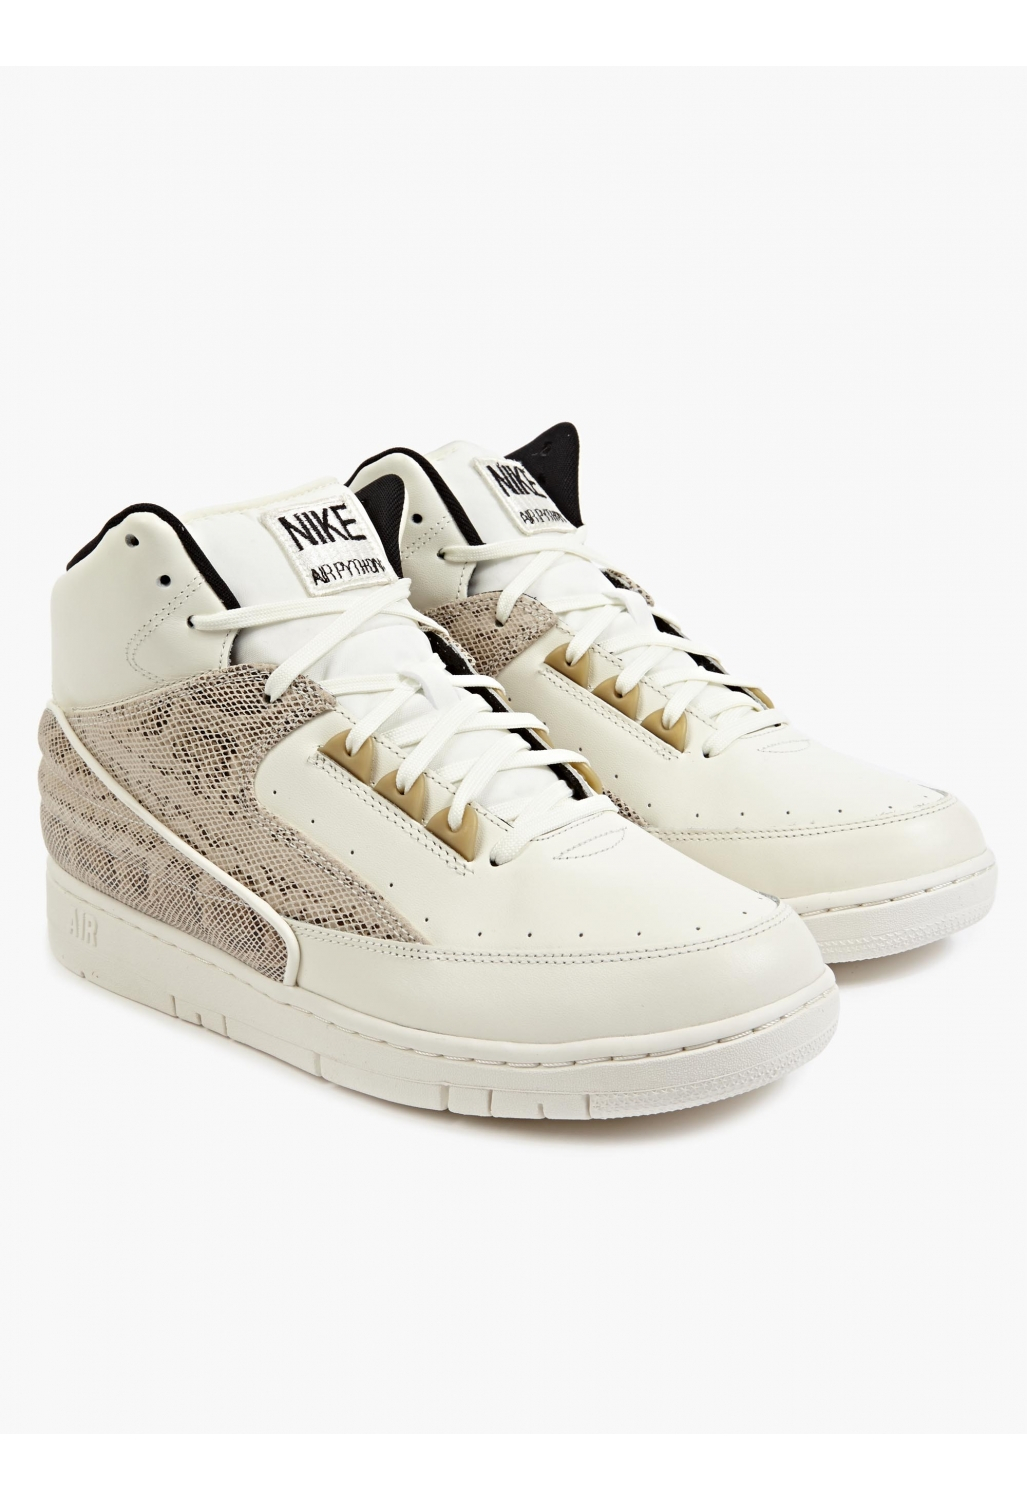 Nike Men'S Off-White Air Python Sneakers in Natural for ...